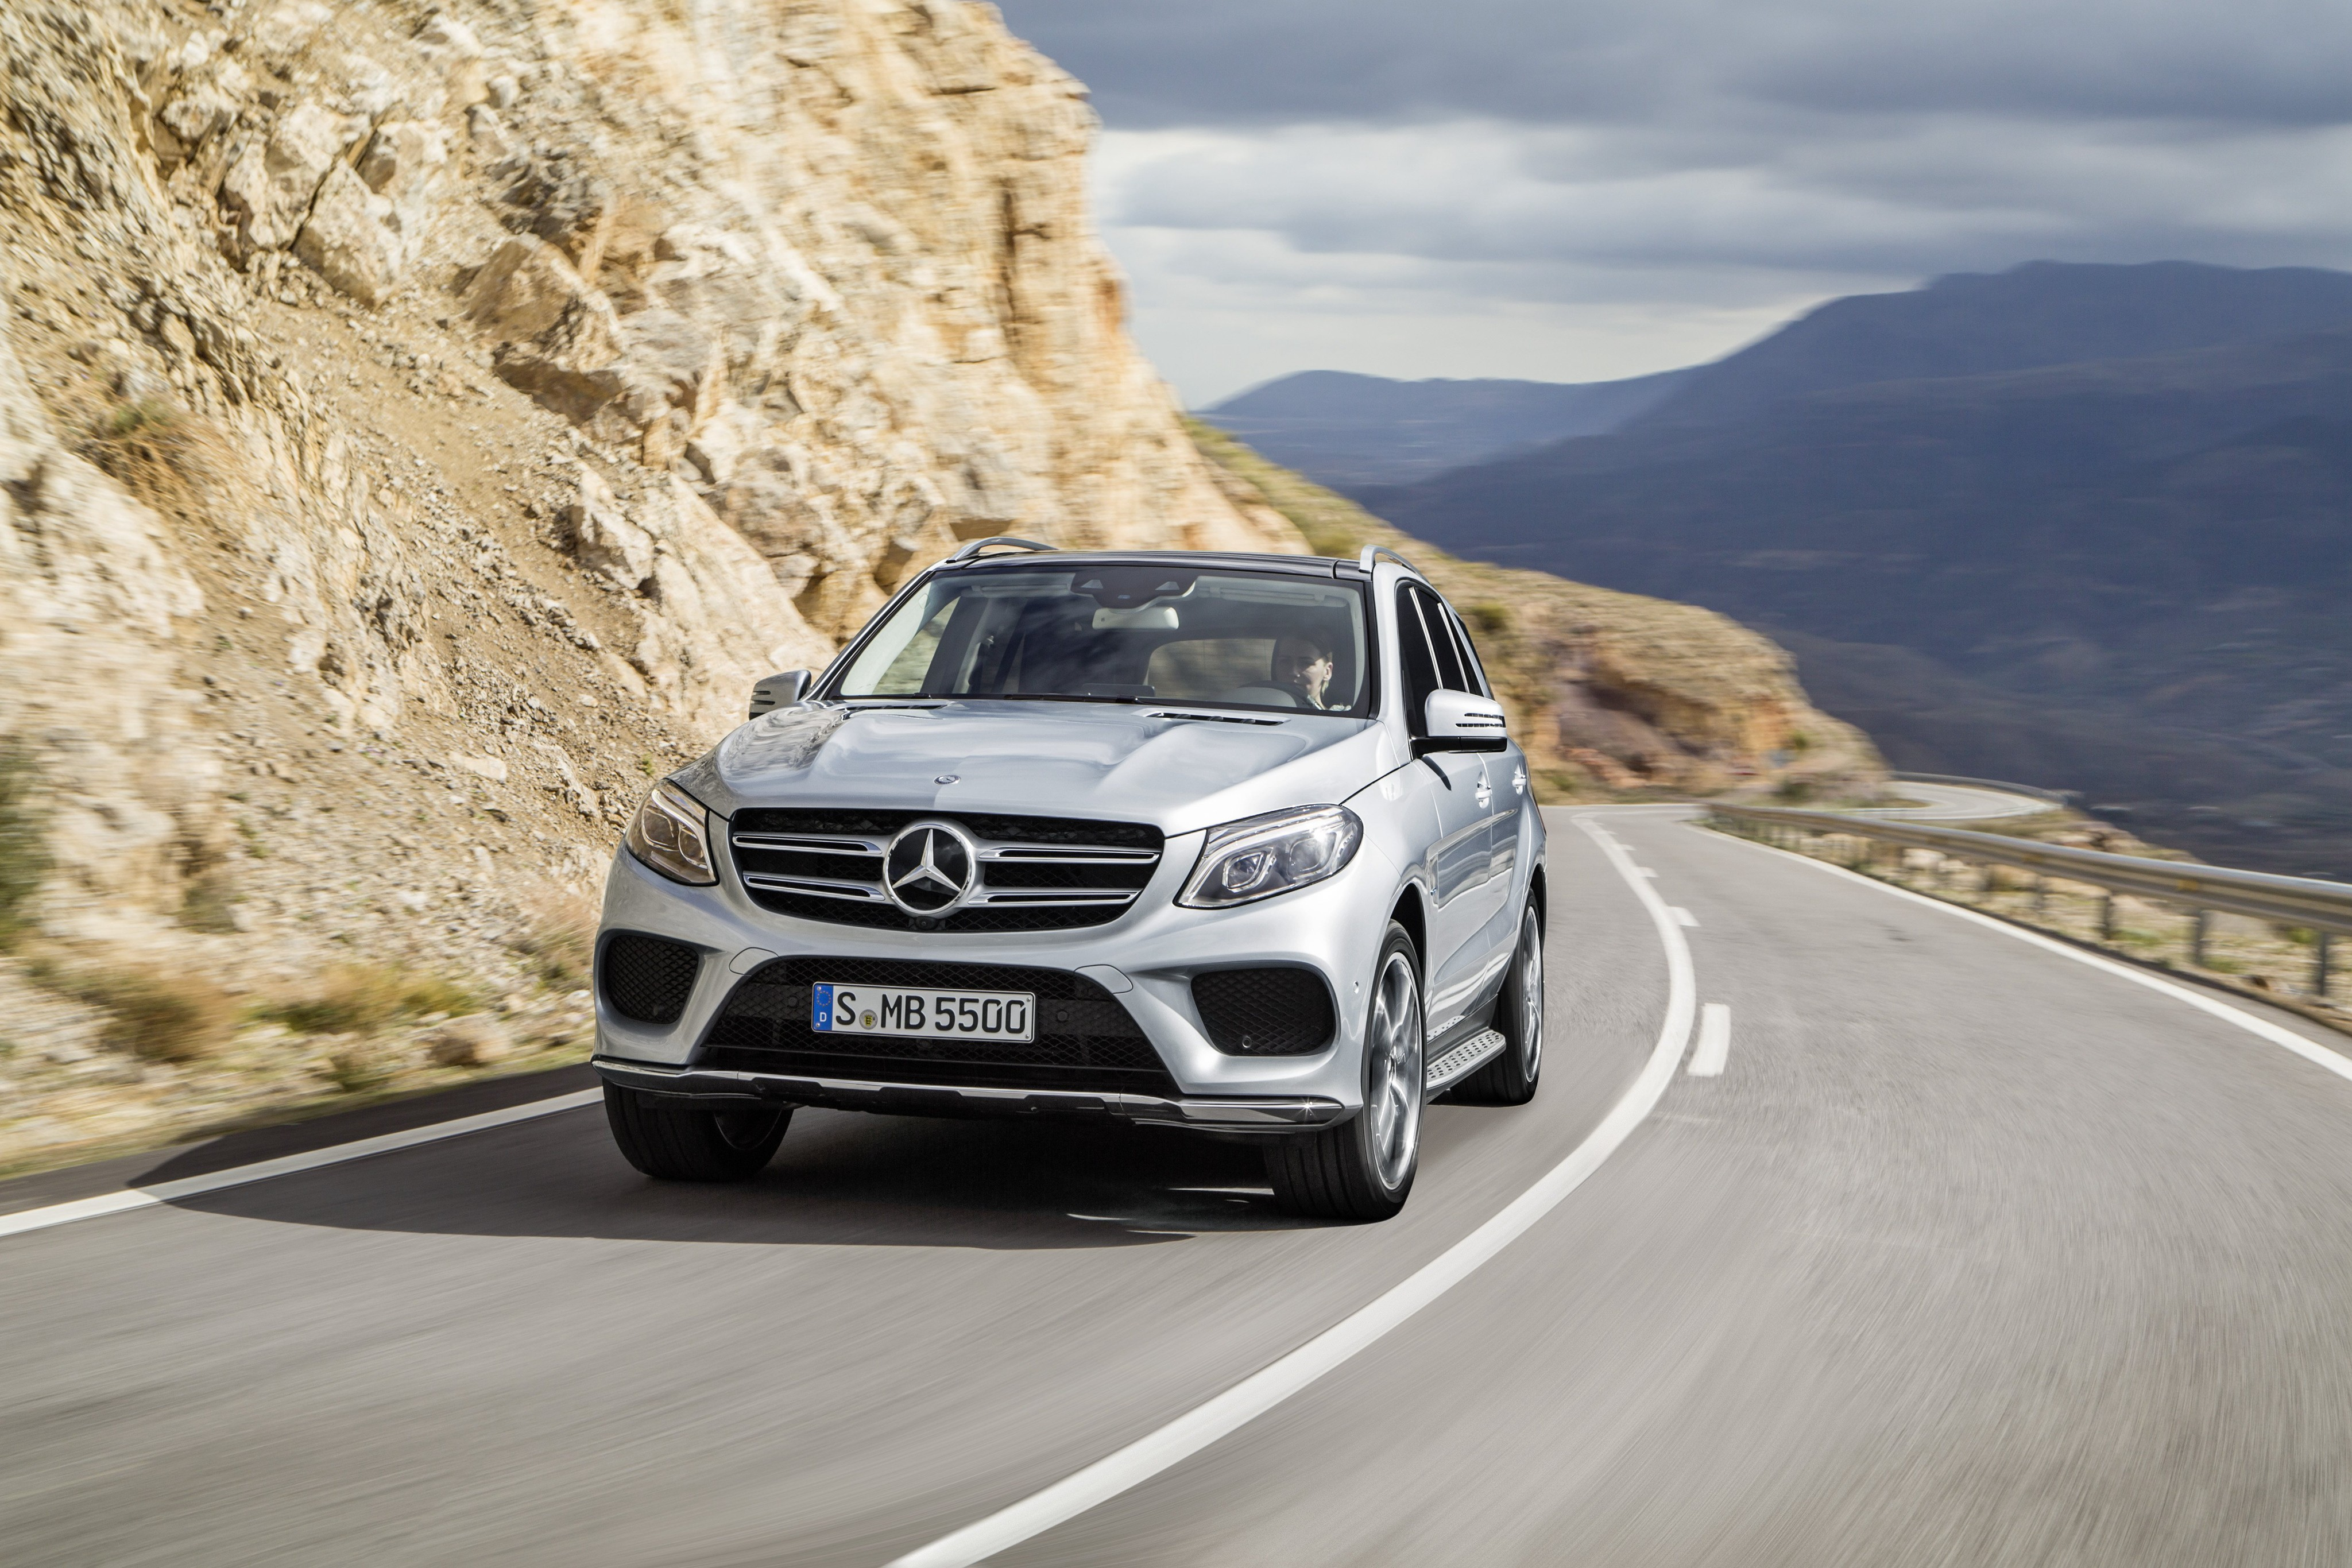 Mercedes GLE-Class SUV (W167) interior specifications